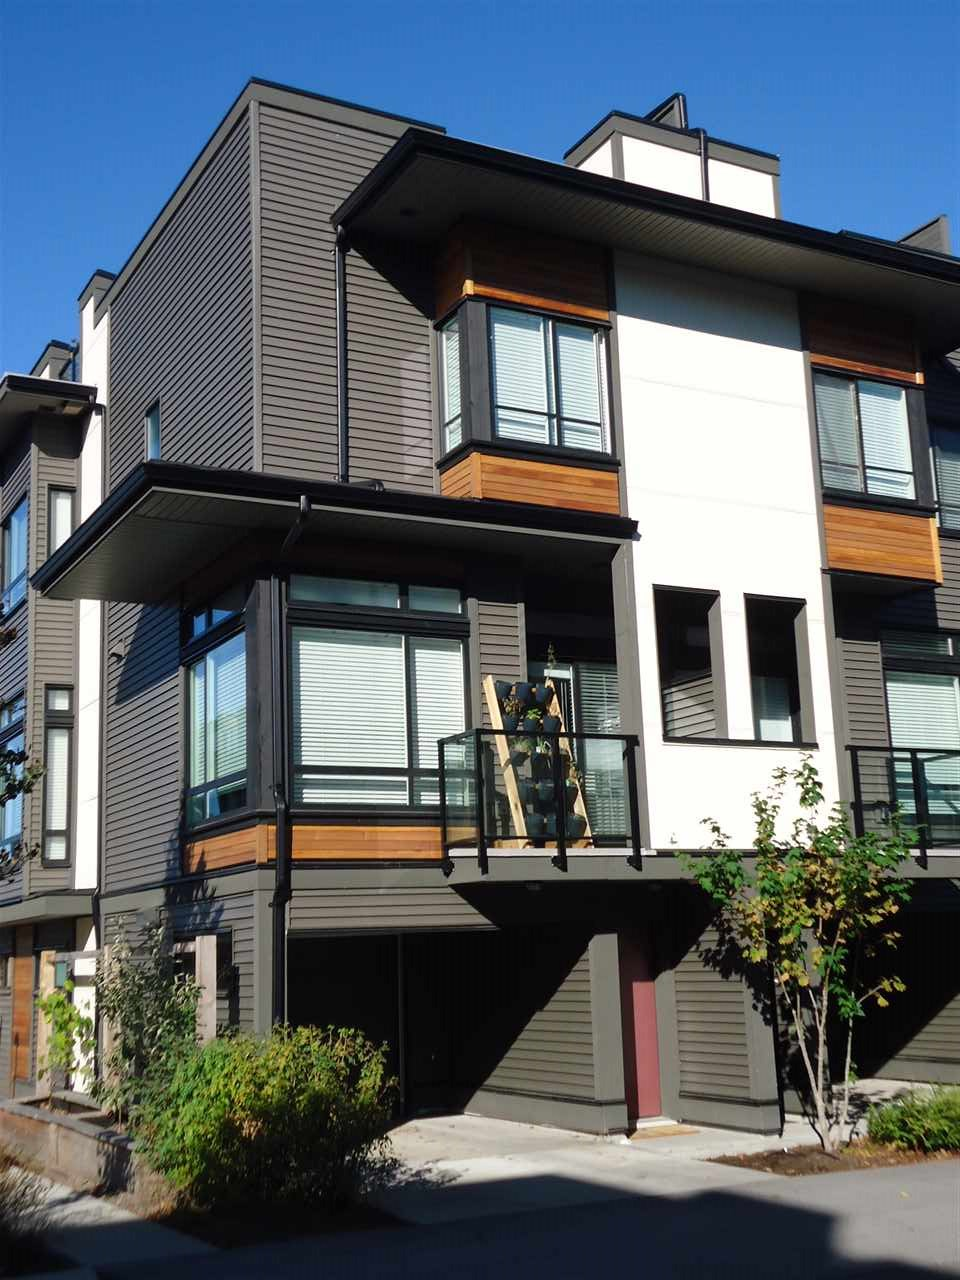 END UNIT... ROOFTOP DECK!!! 2 bedroom, 2 bathroom, beautifully finished townhome in the heart of Willoughby. 10 ft flat finished ceilings on the main floor, floor to ceiling windows, covered balcony at the front with natural gas hookup, the Rooftop Deck is 450 sq ft with cable, water, electricity and natural gas. Single car garage with single carport. Beautiful kitchen with gas range, quartz countertops, large island. Get through this one!!!